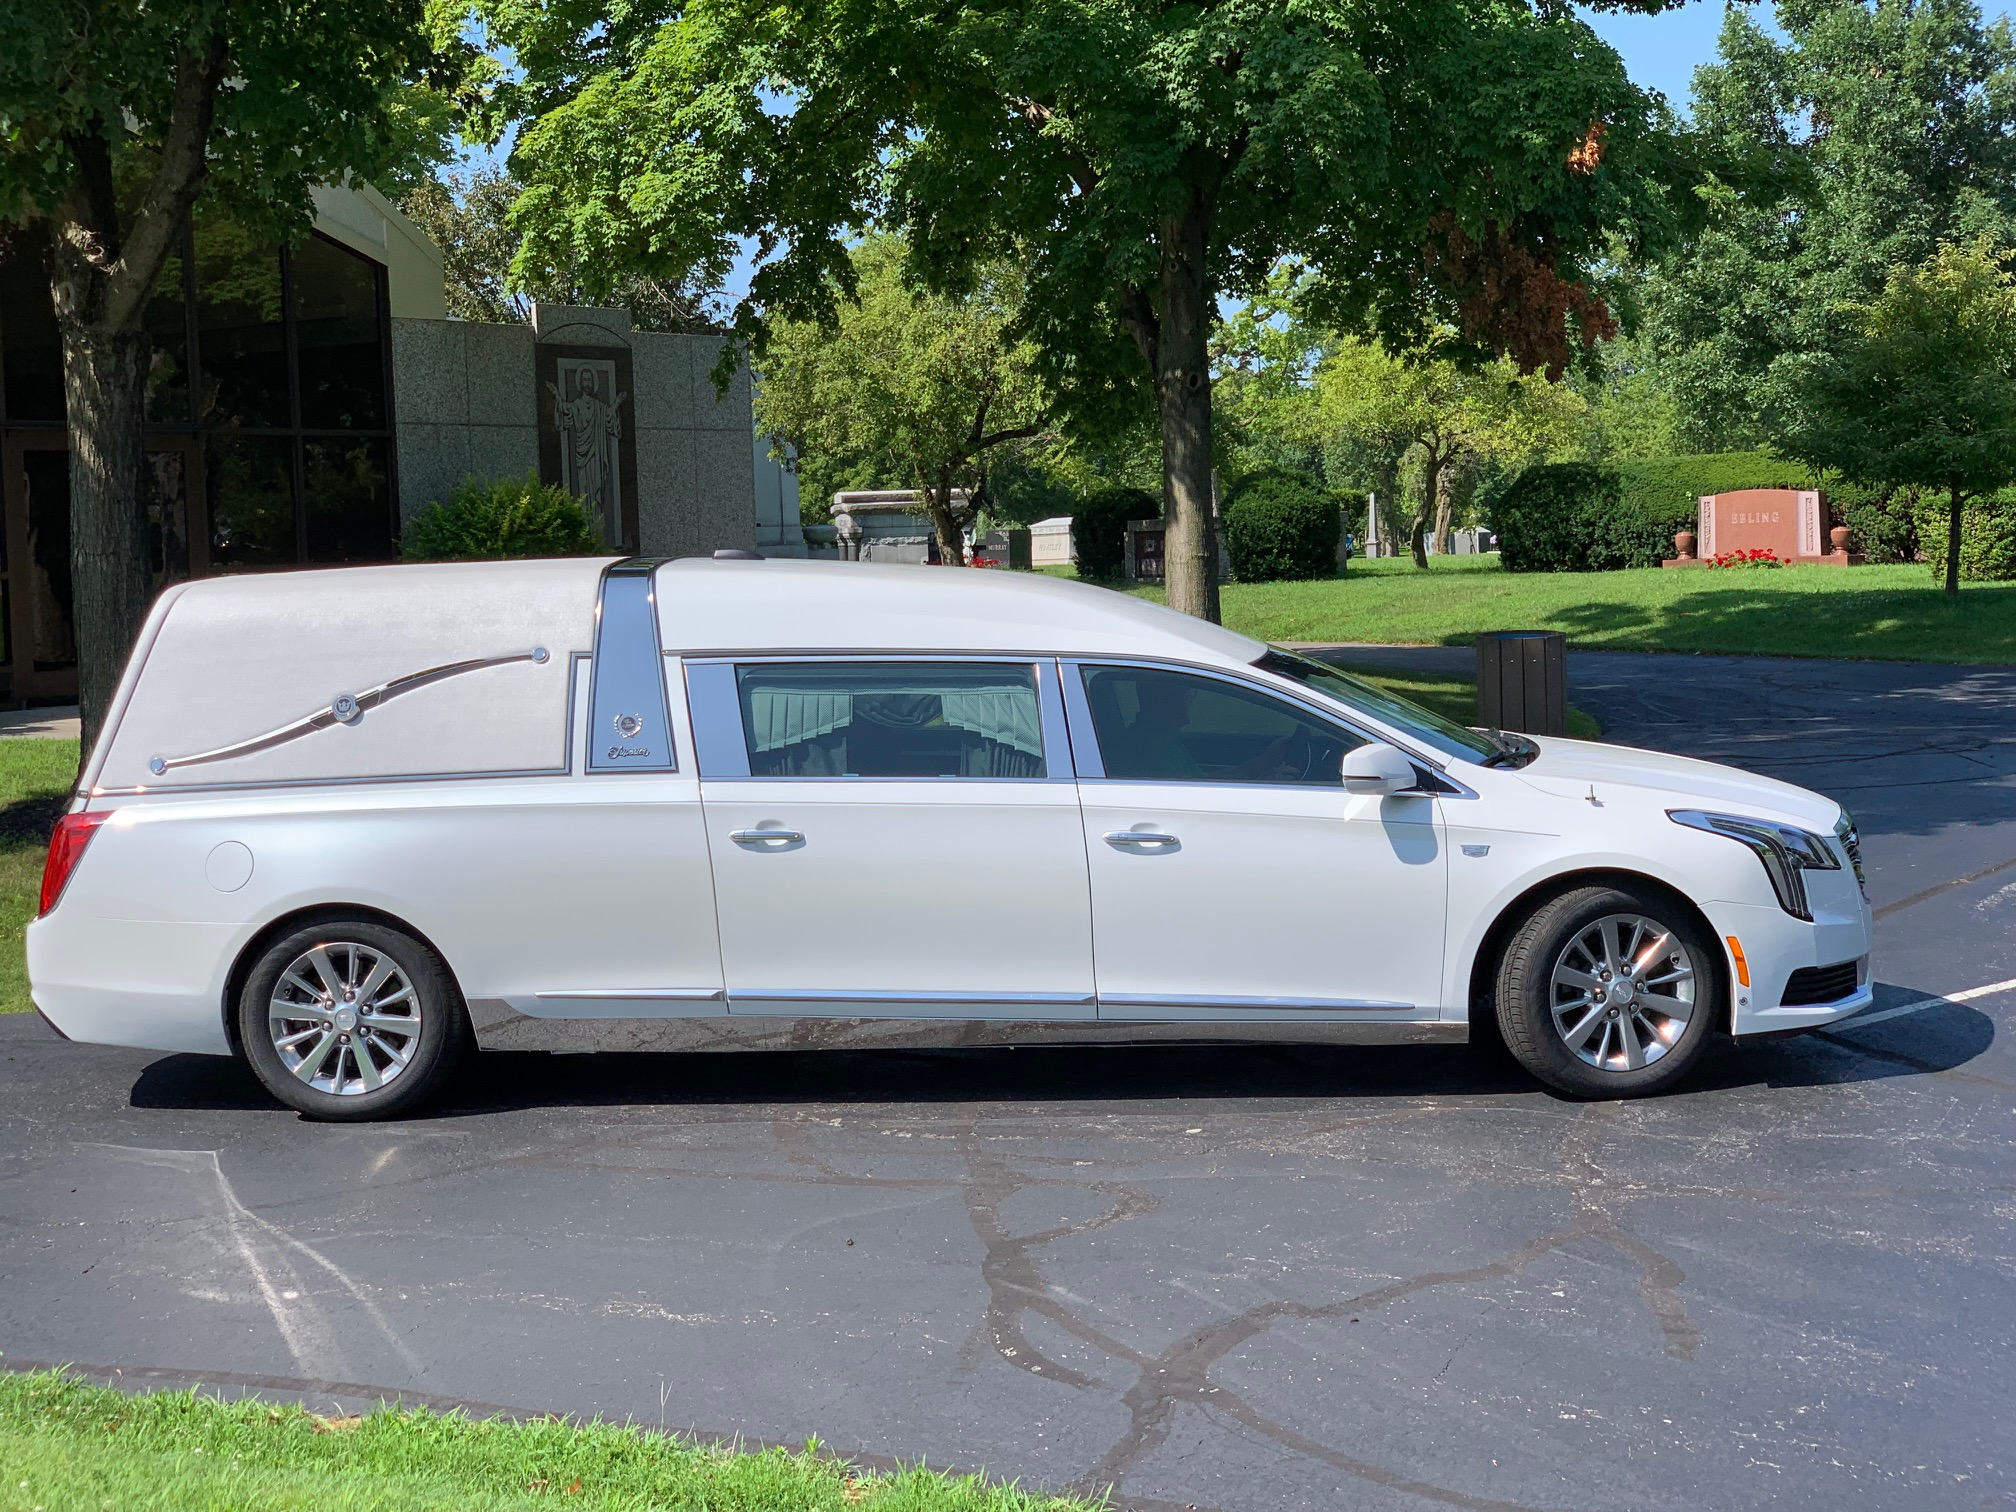 2019 Cadillac Superior Crown Sovereign Coach